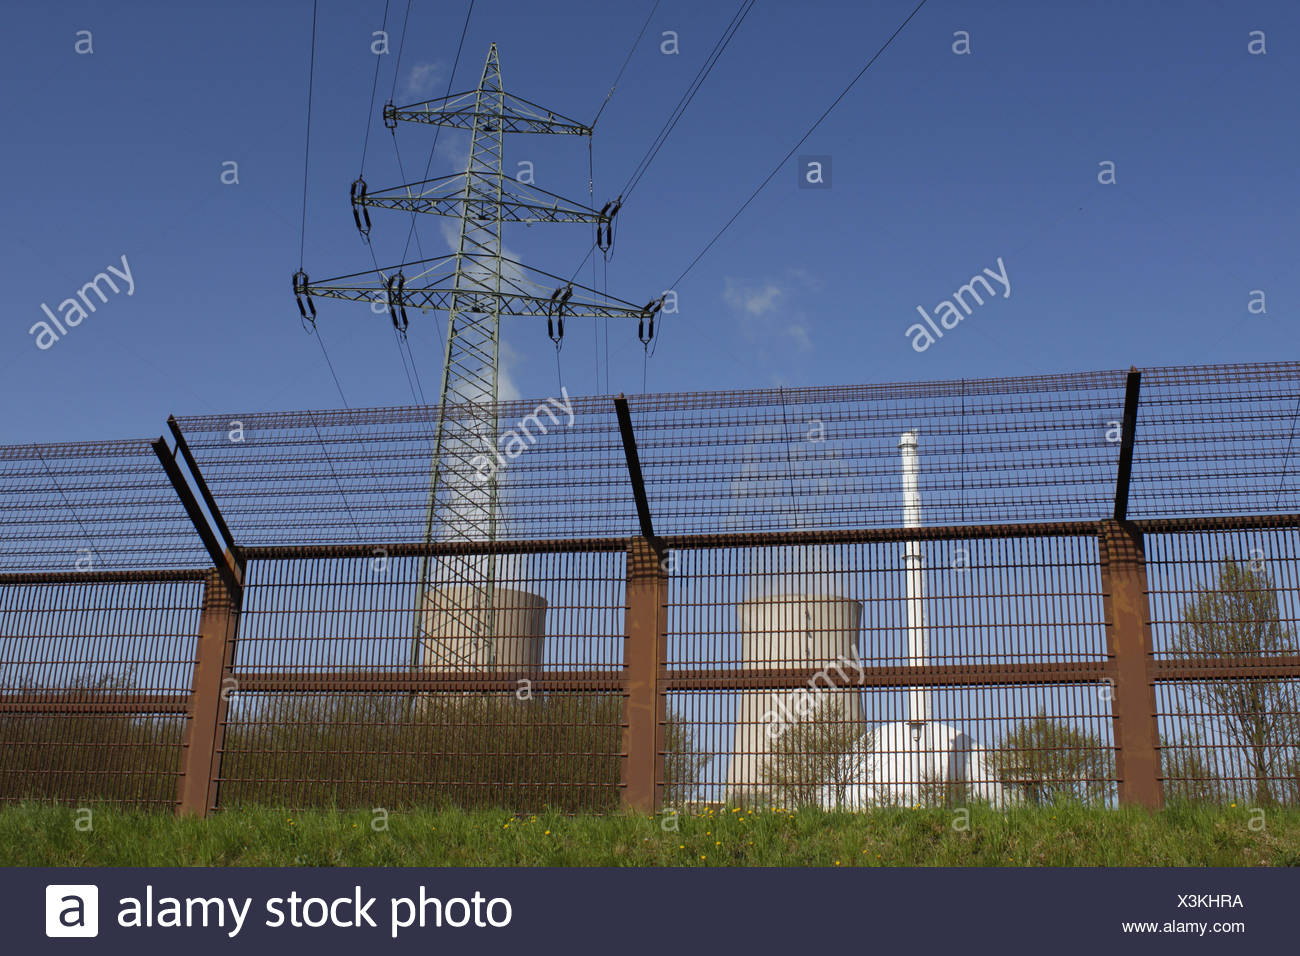 power station fence fence in fencing nuclear power station atomic energy - Stock Image